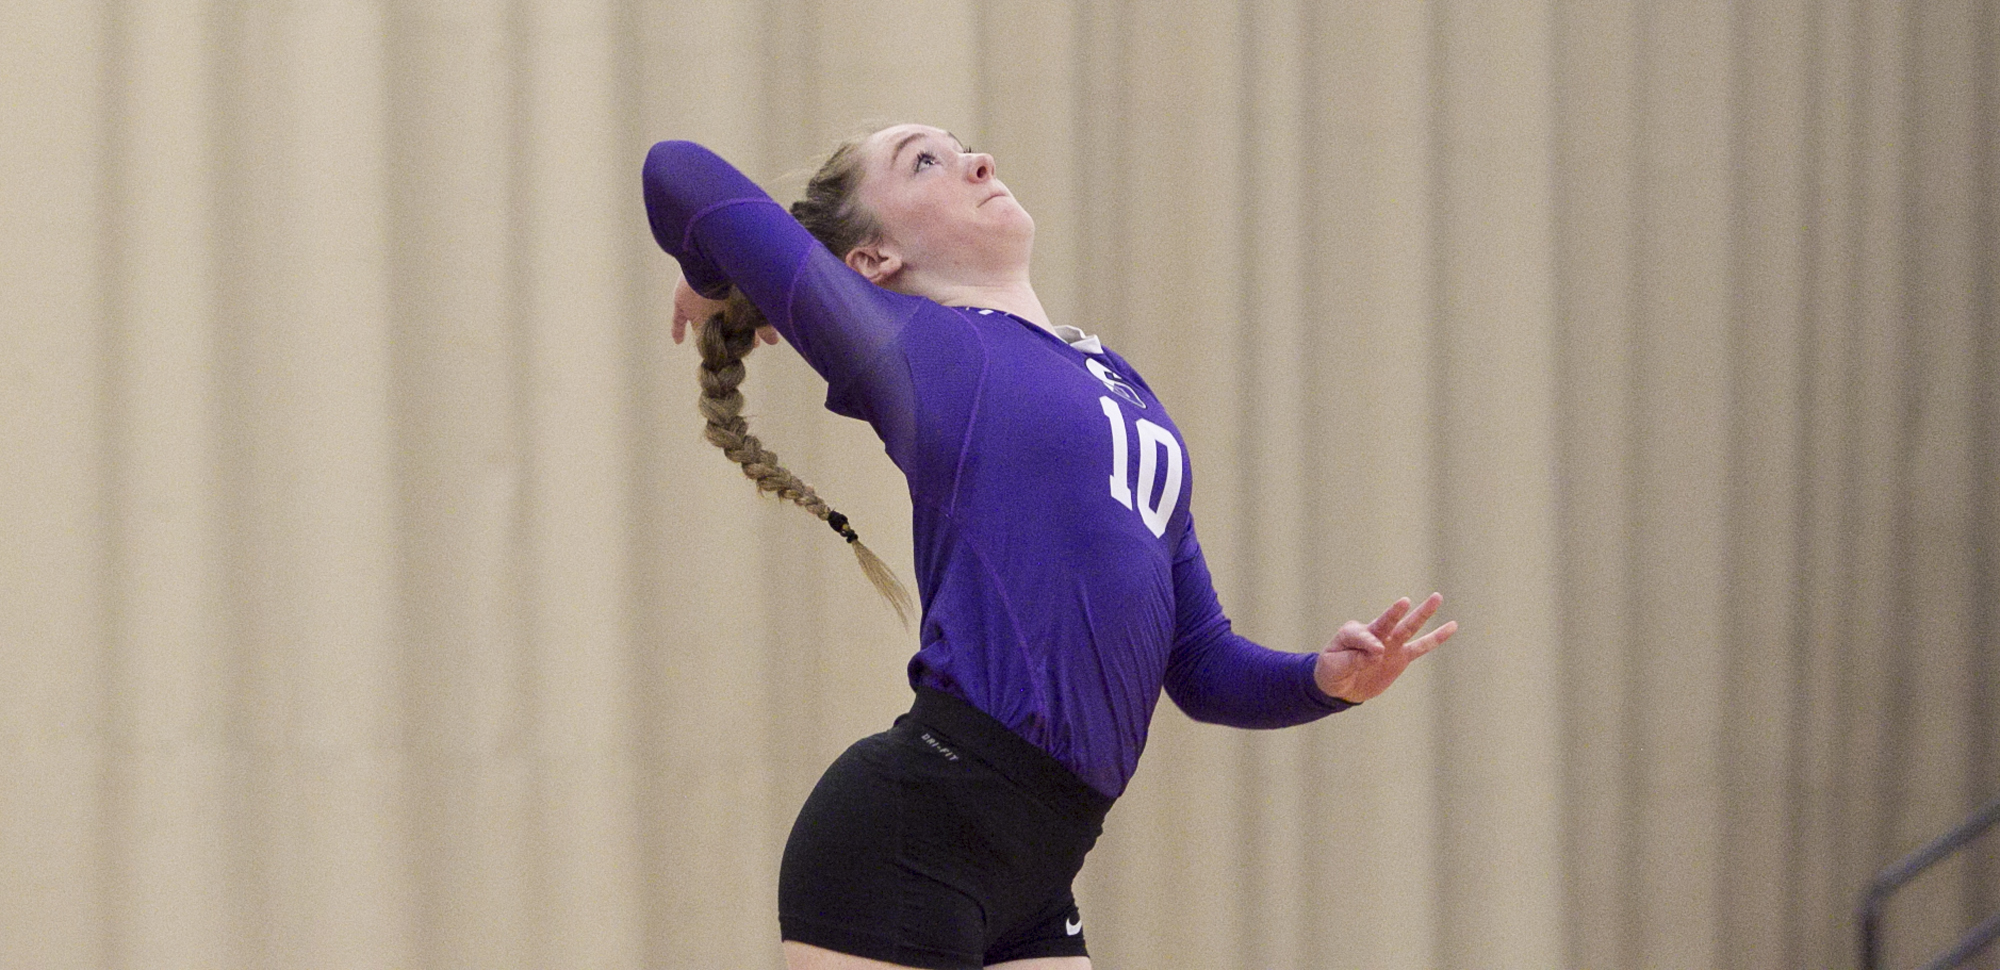 Molly Dunfee picked up a match-high 10 digs in Scranton's victory over Immaculata on Friday night at Immaculata.